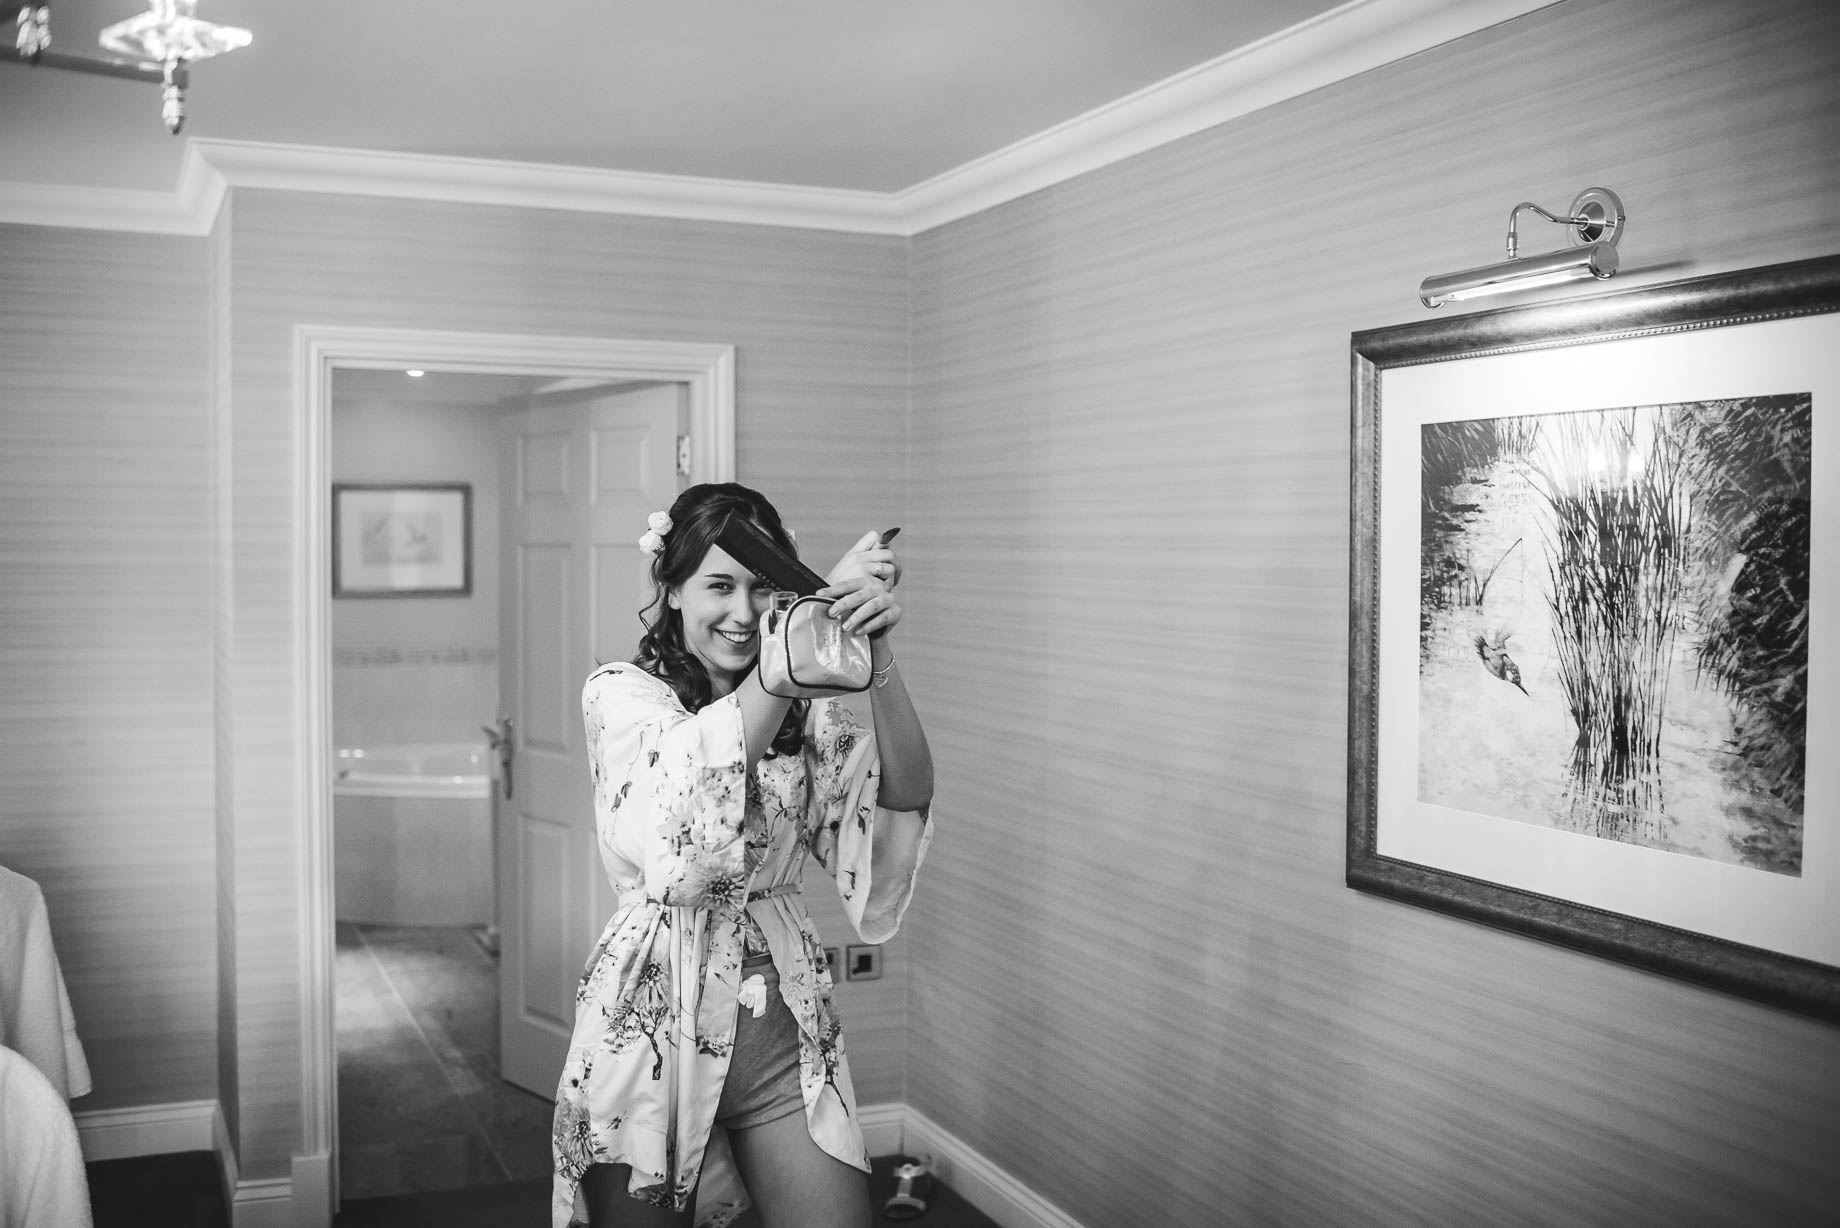 Luton Hoo wedding photography by Guy Collier Photography - Lauren and Gem (9 of 178)